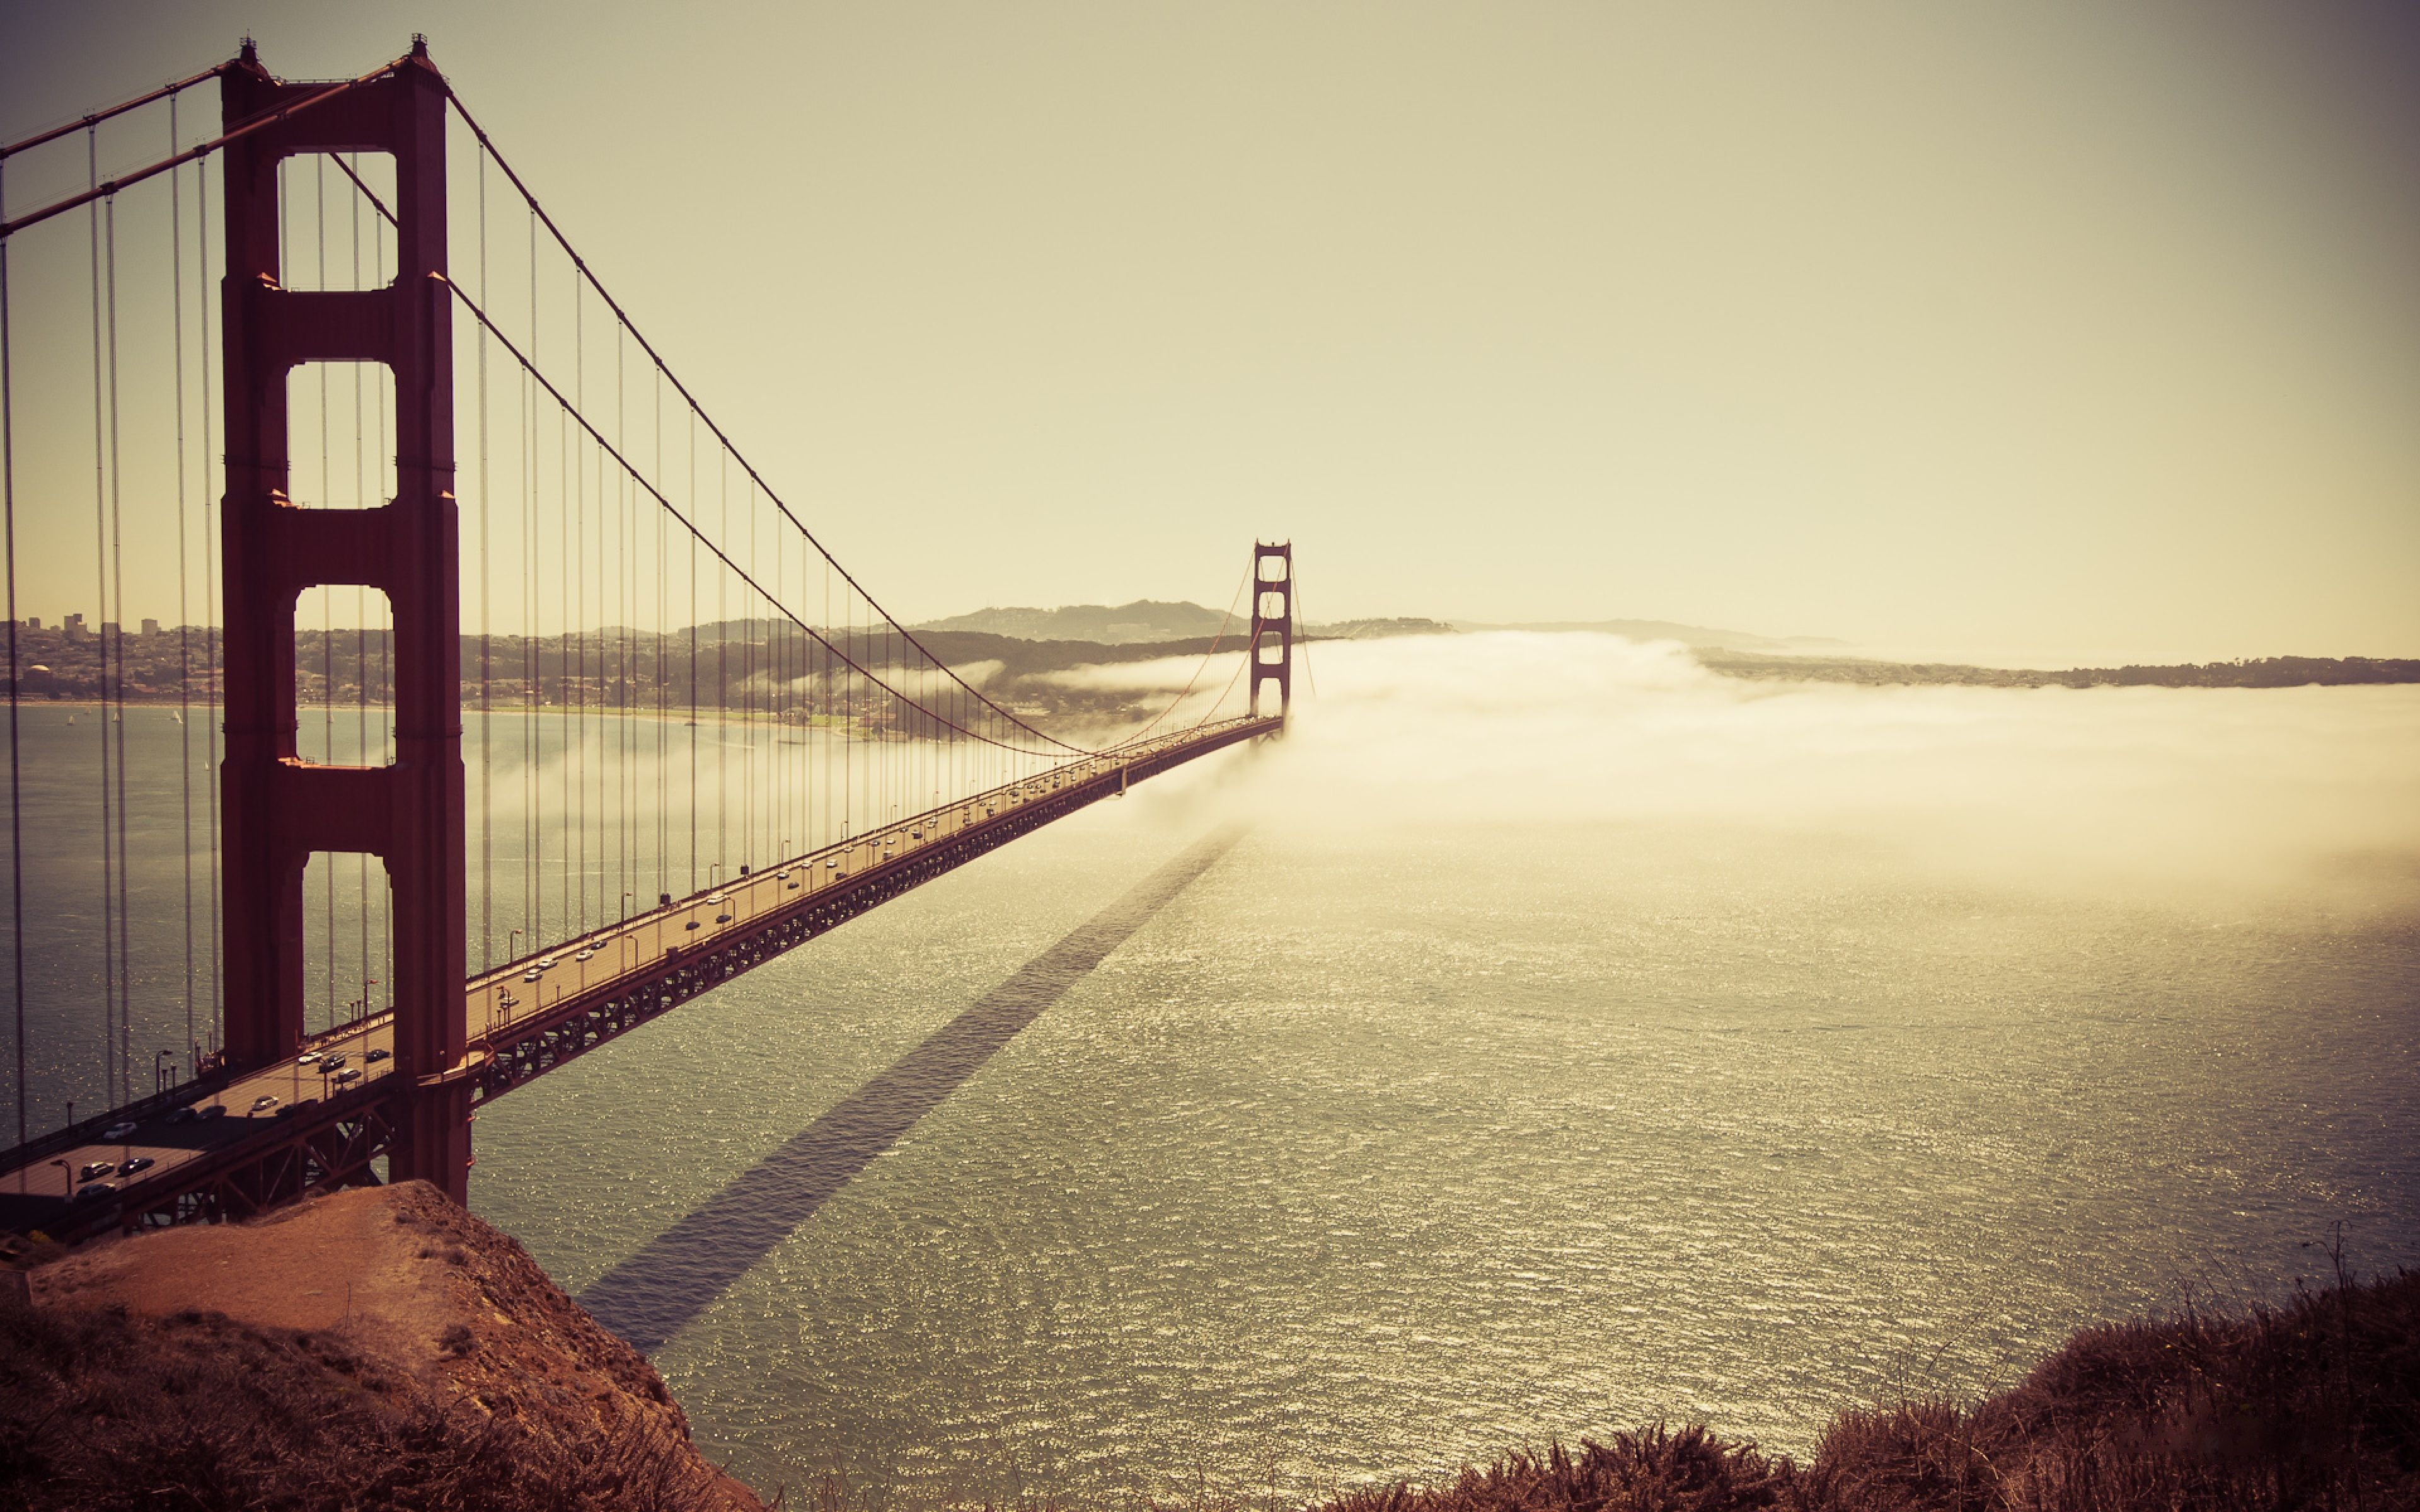 San Francisco 4k Wallpaper Golden Gate Bridge Golden Gate San Francisco Golden Gate Bridge